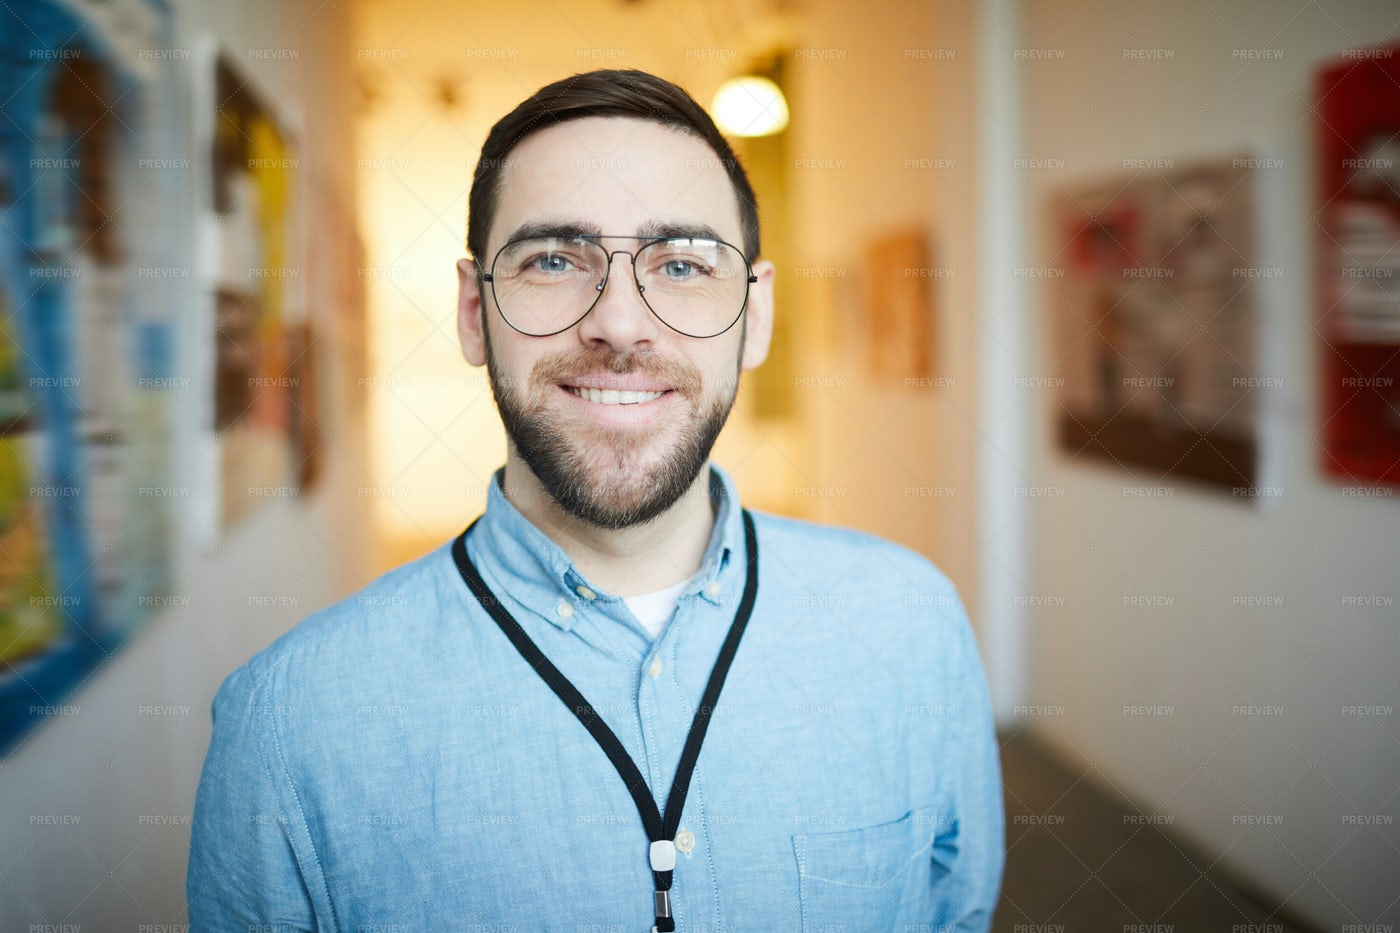 Smiling Bearded Man In Art Gallery: Stock Photos